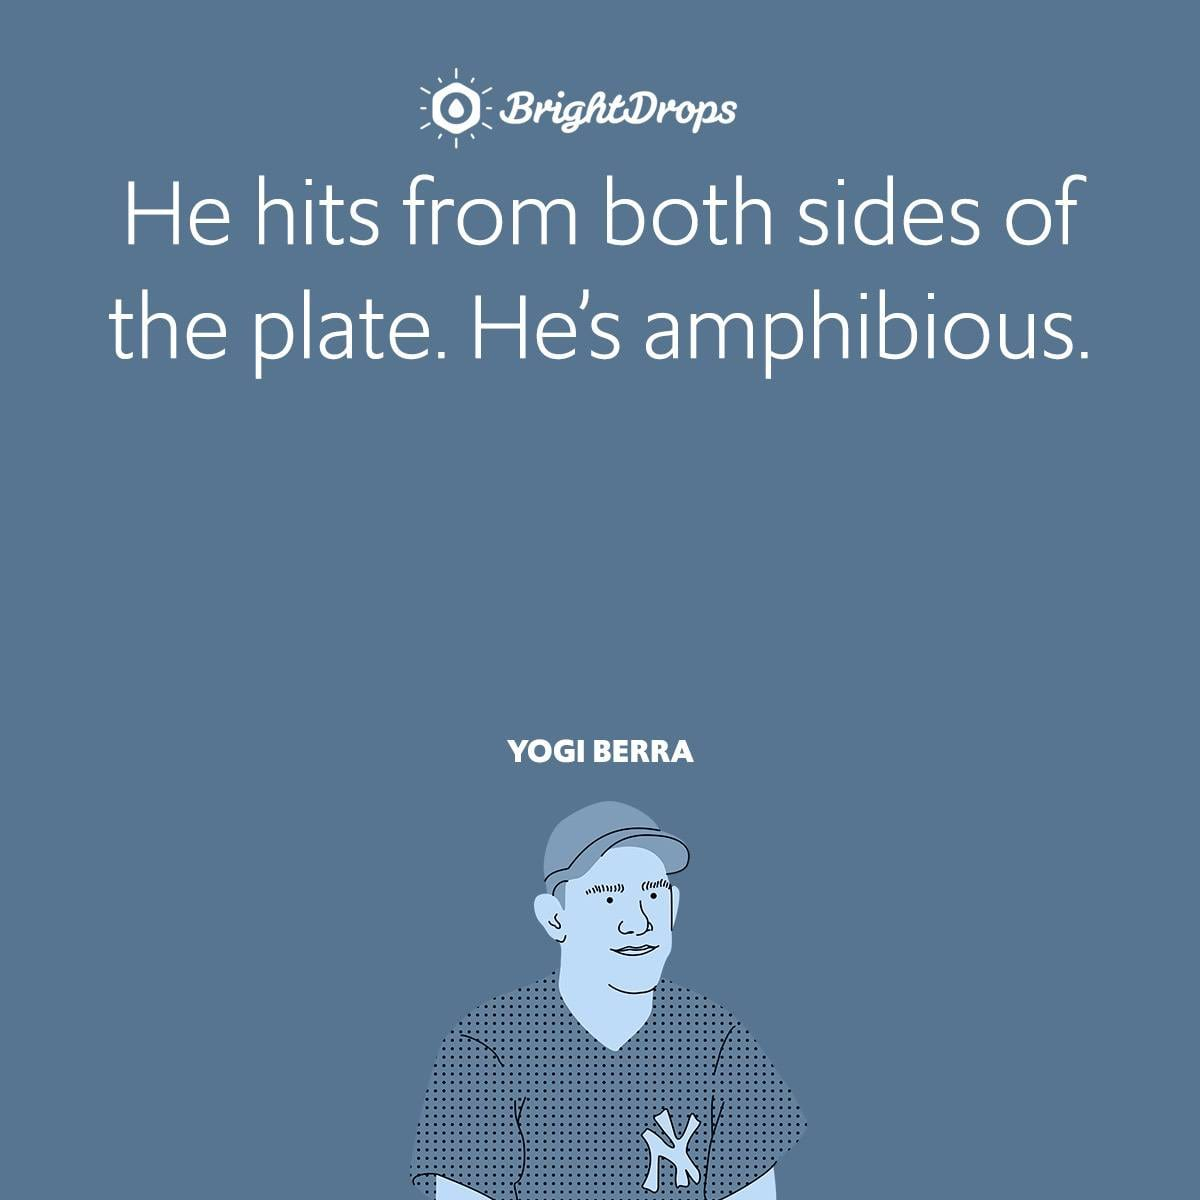 He hits from both sides of the plate. He's amphibious.